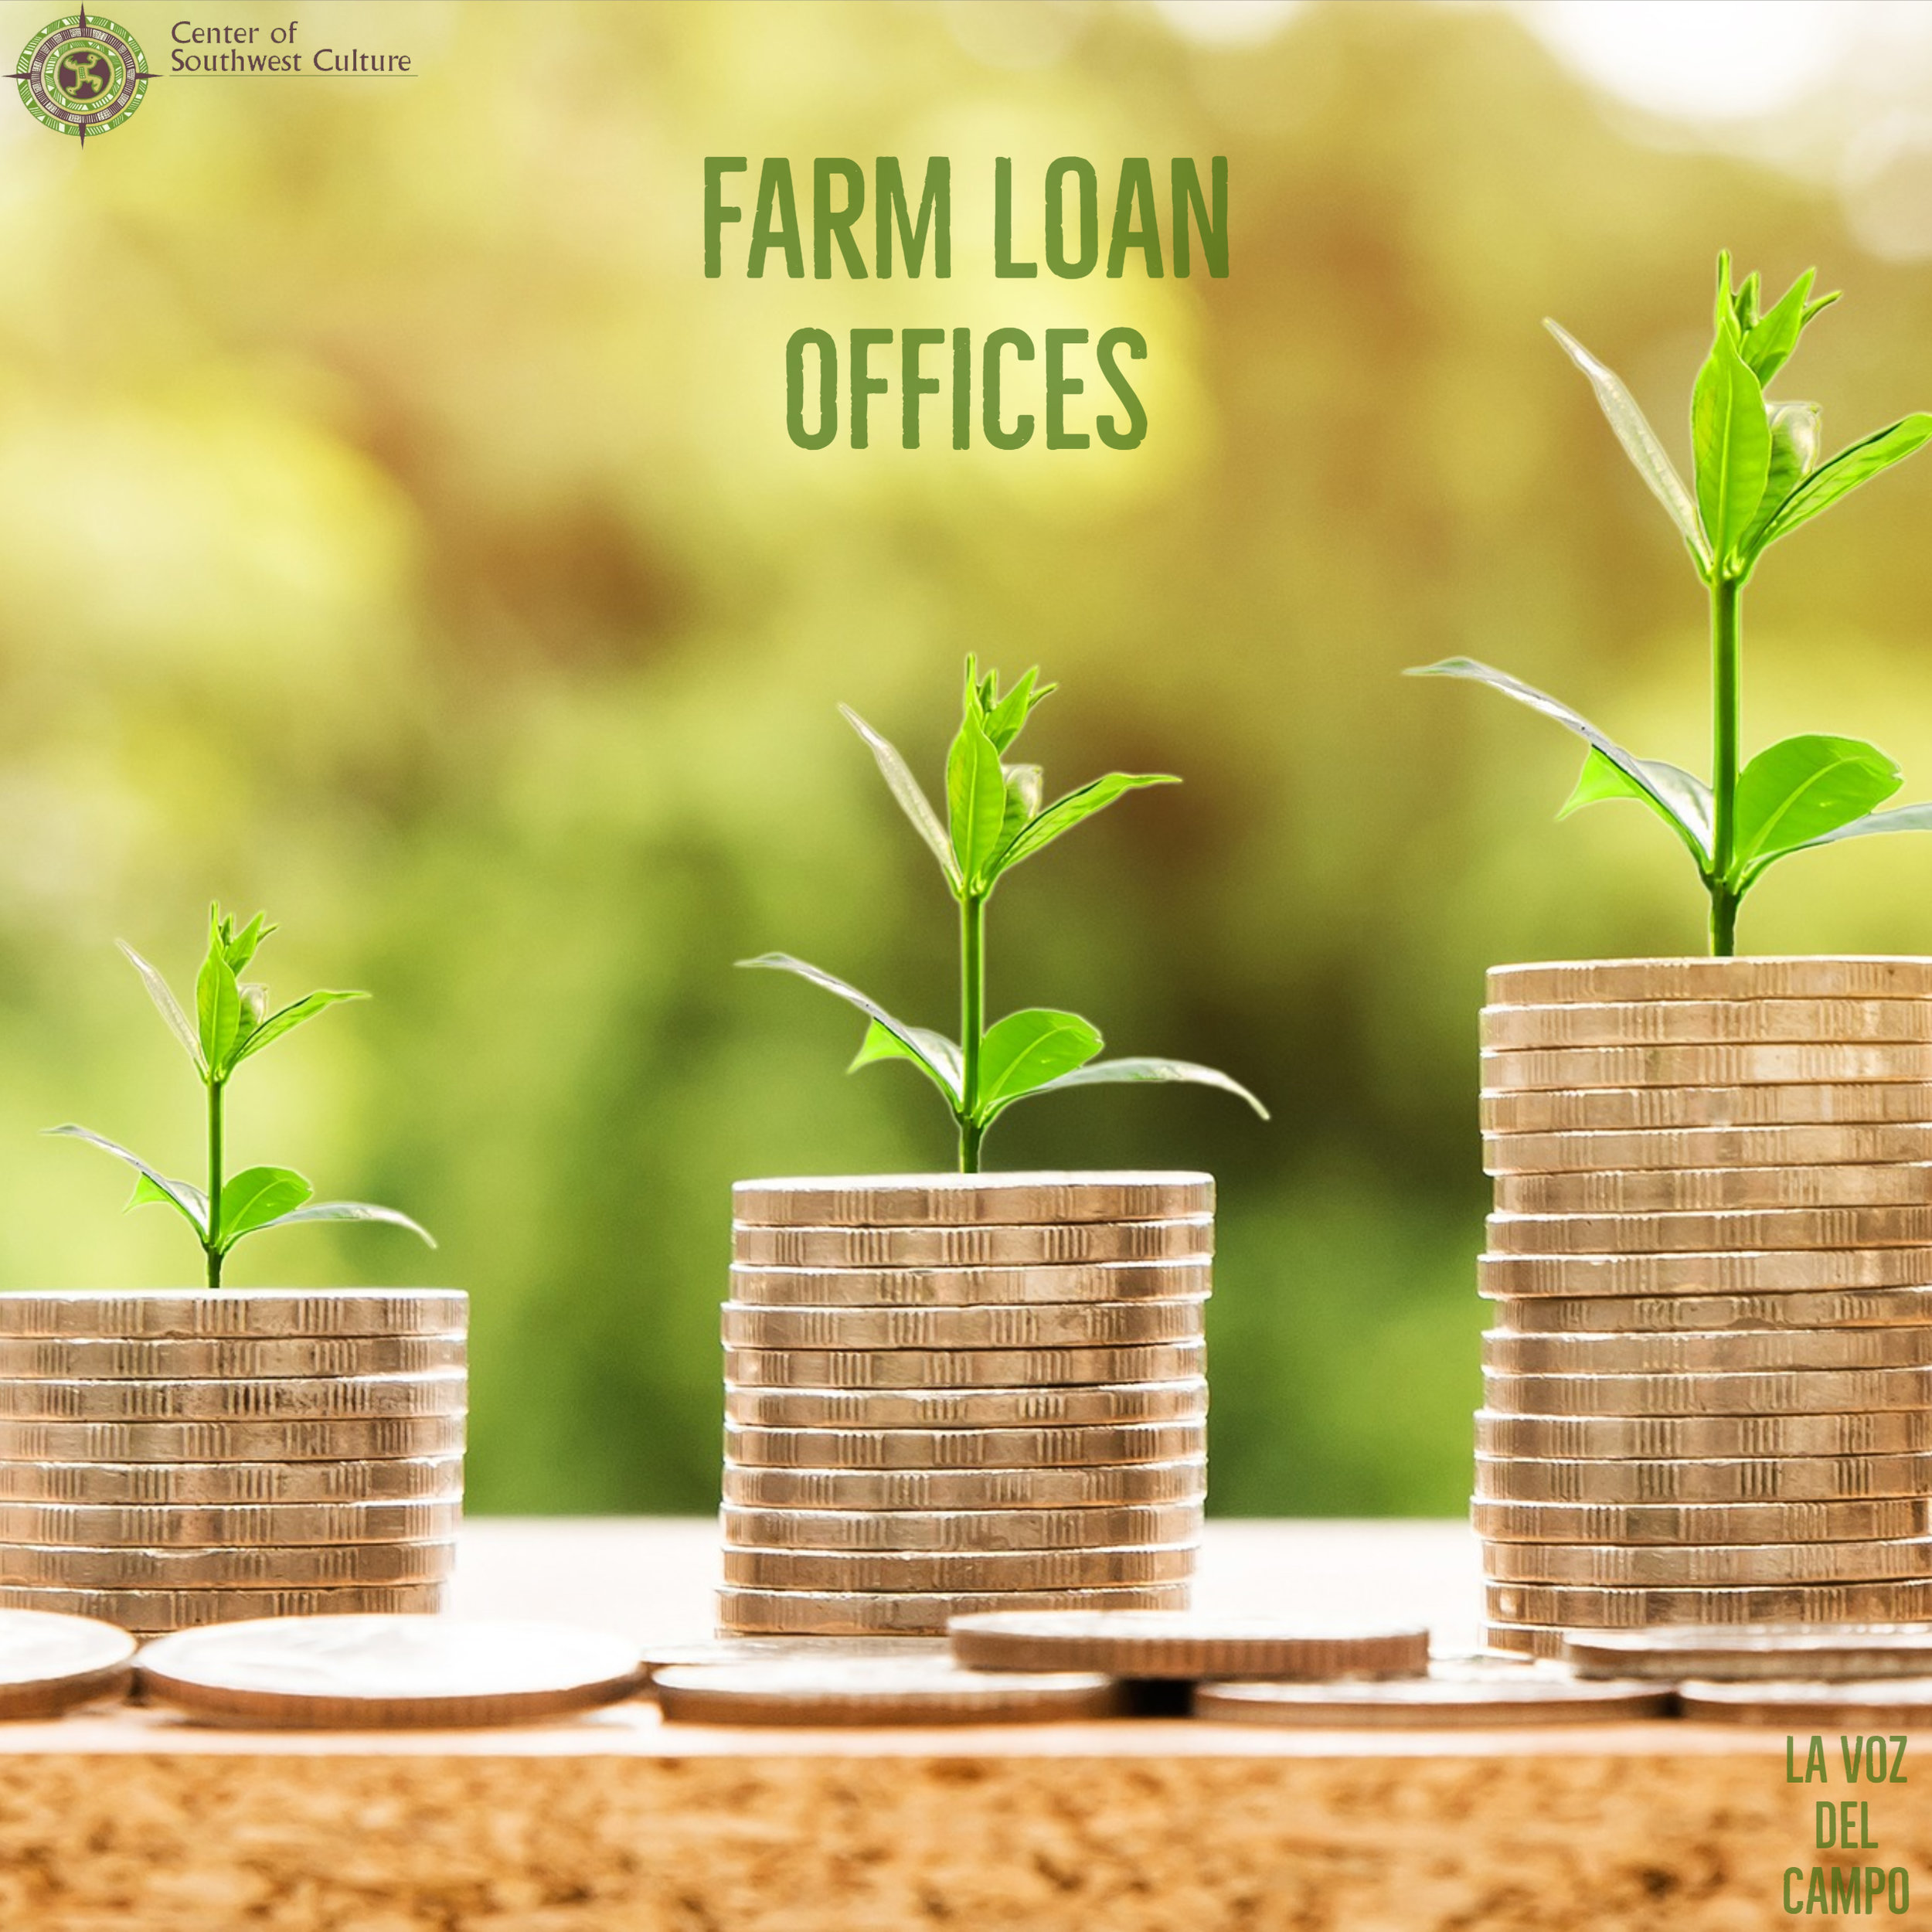 Farm loan Offices - Over the last 5 years, FSA has distributed over $508 million in benefits and loans to New Mexico's ag producers. With an FSA network of 24 NM county offices and 4 farm loan offices, you can access all of FSA's programs.